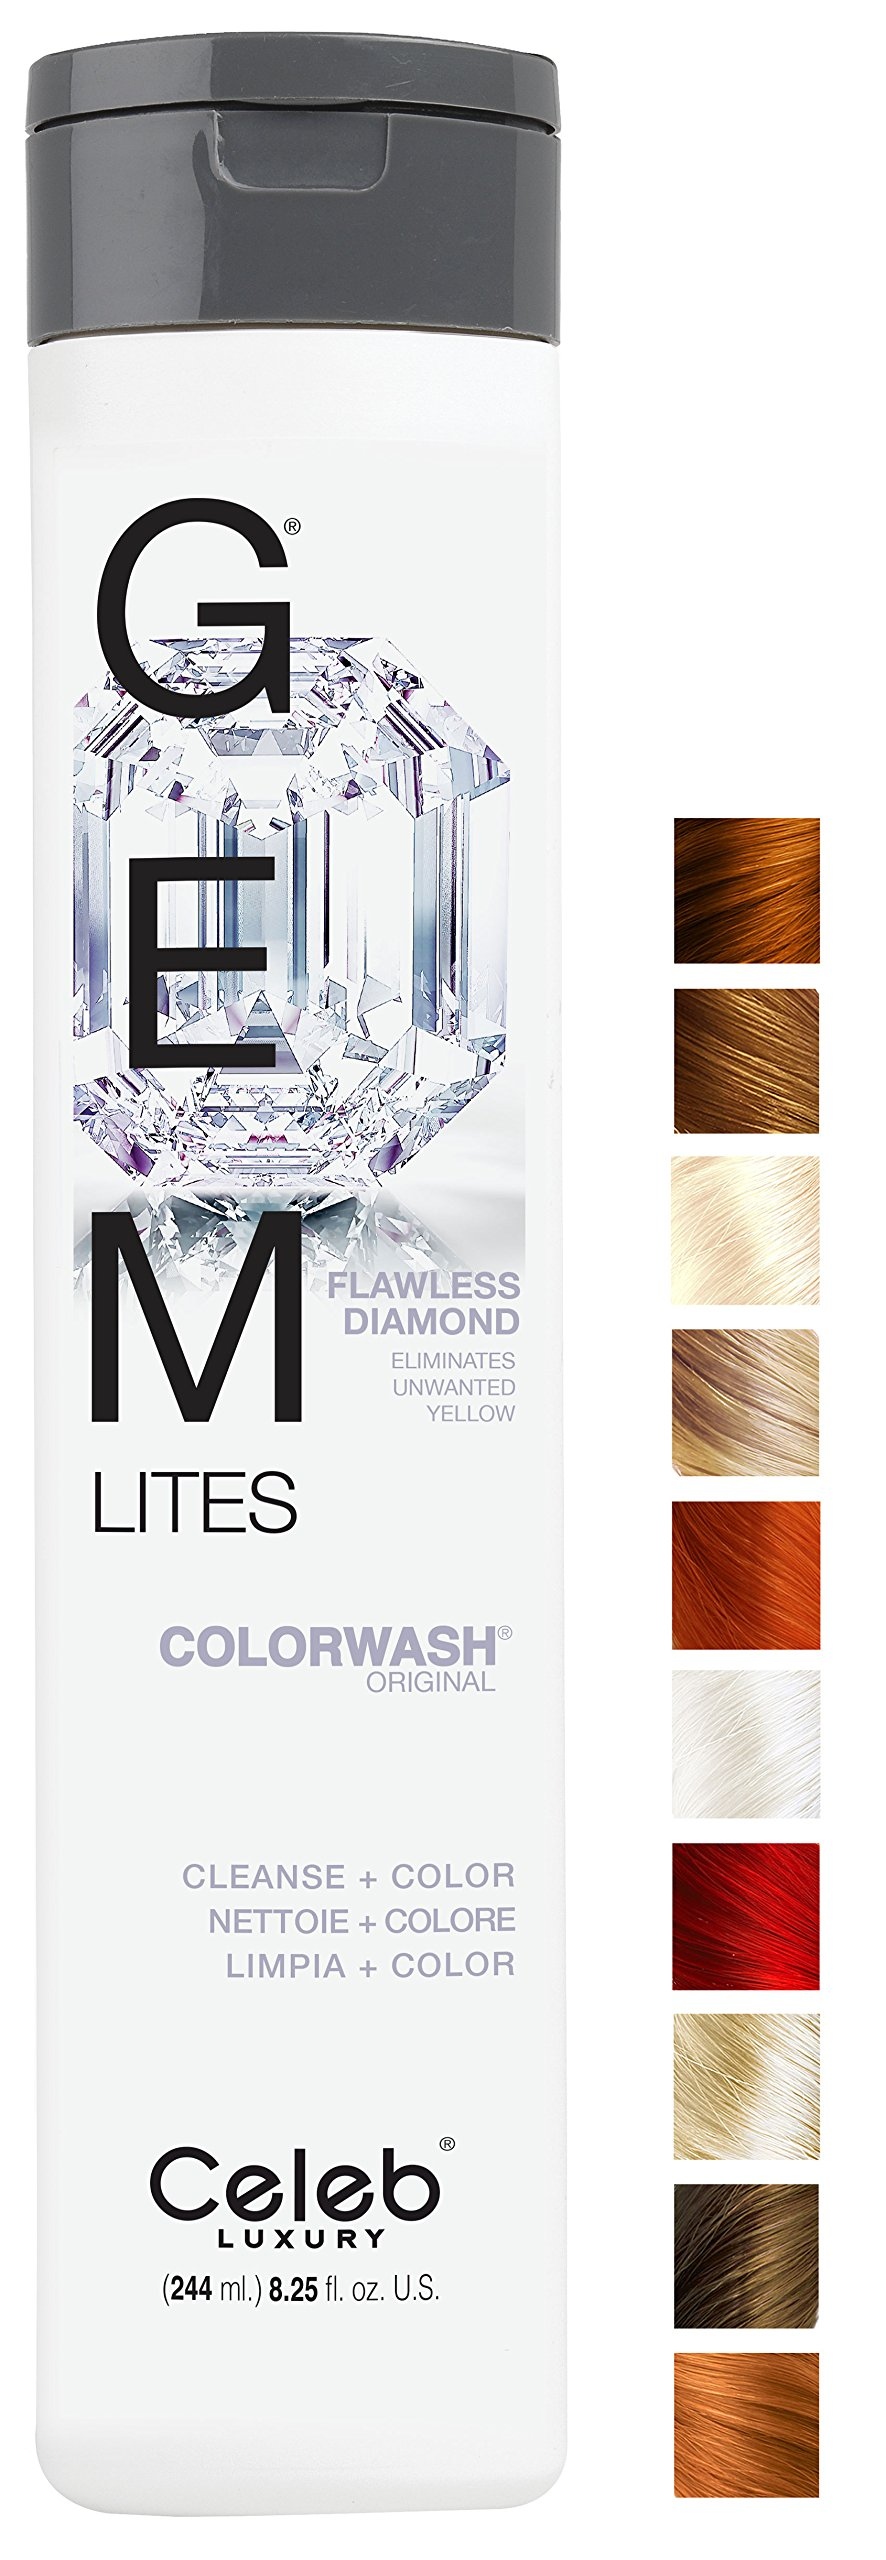 Gem Lites Flawless Diamond Colorwash, 8.25oz